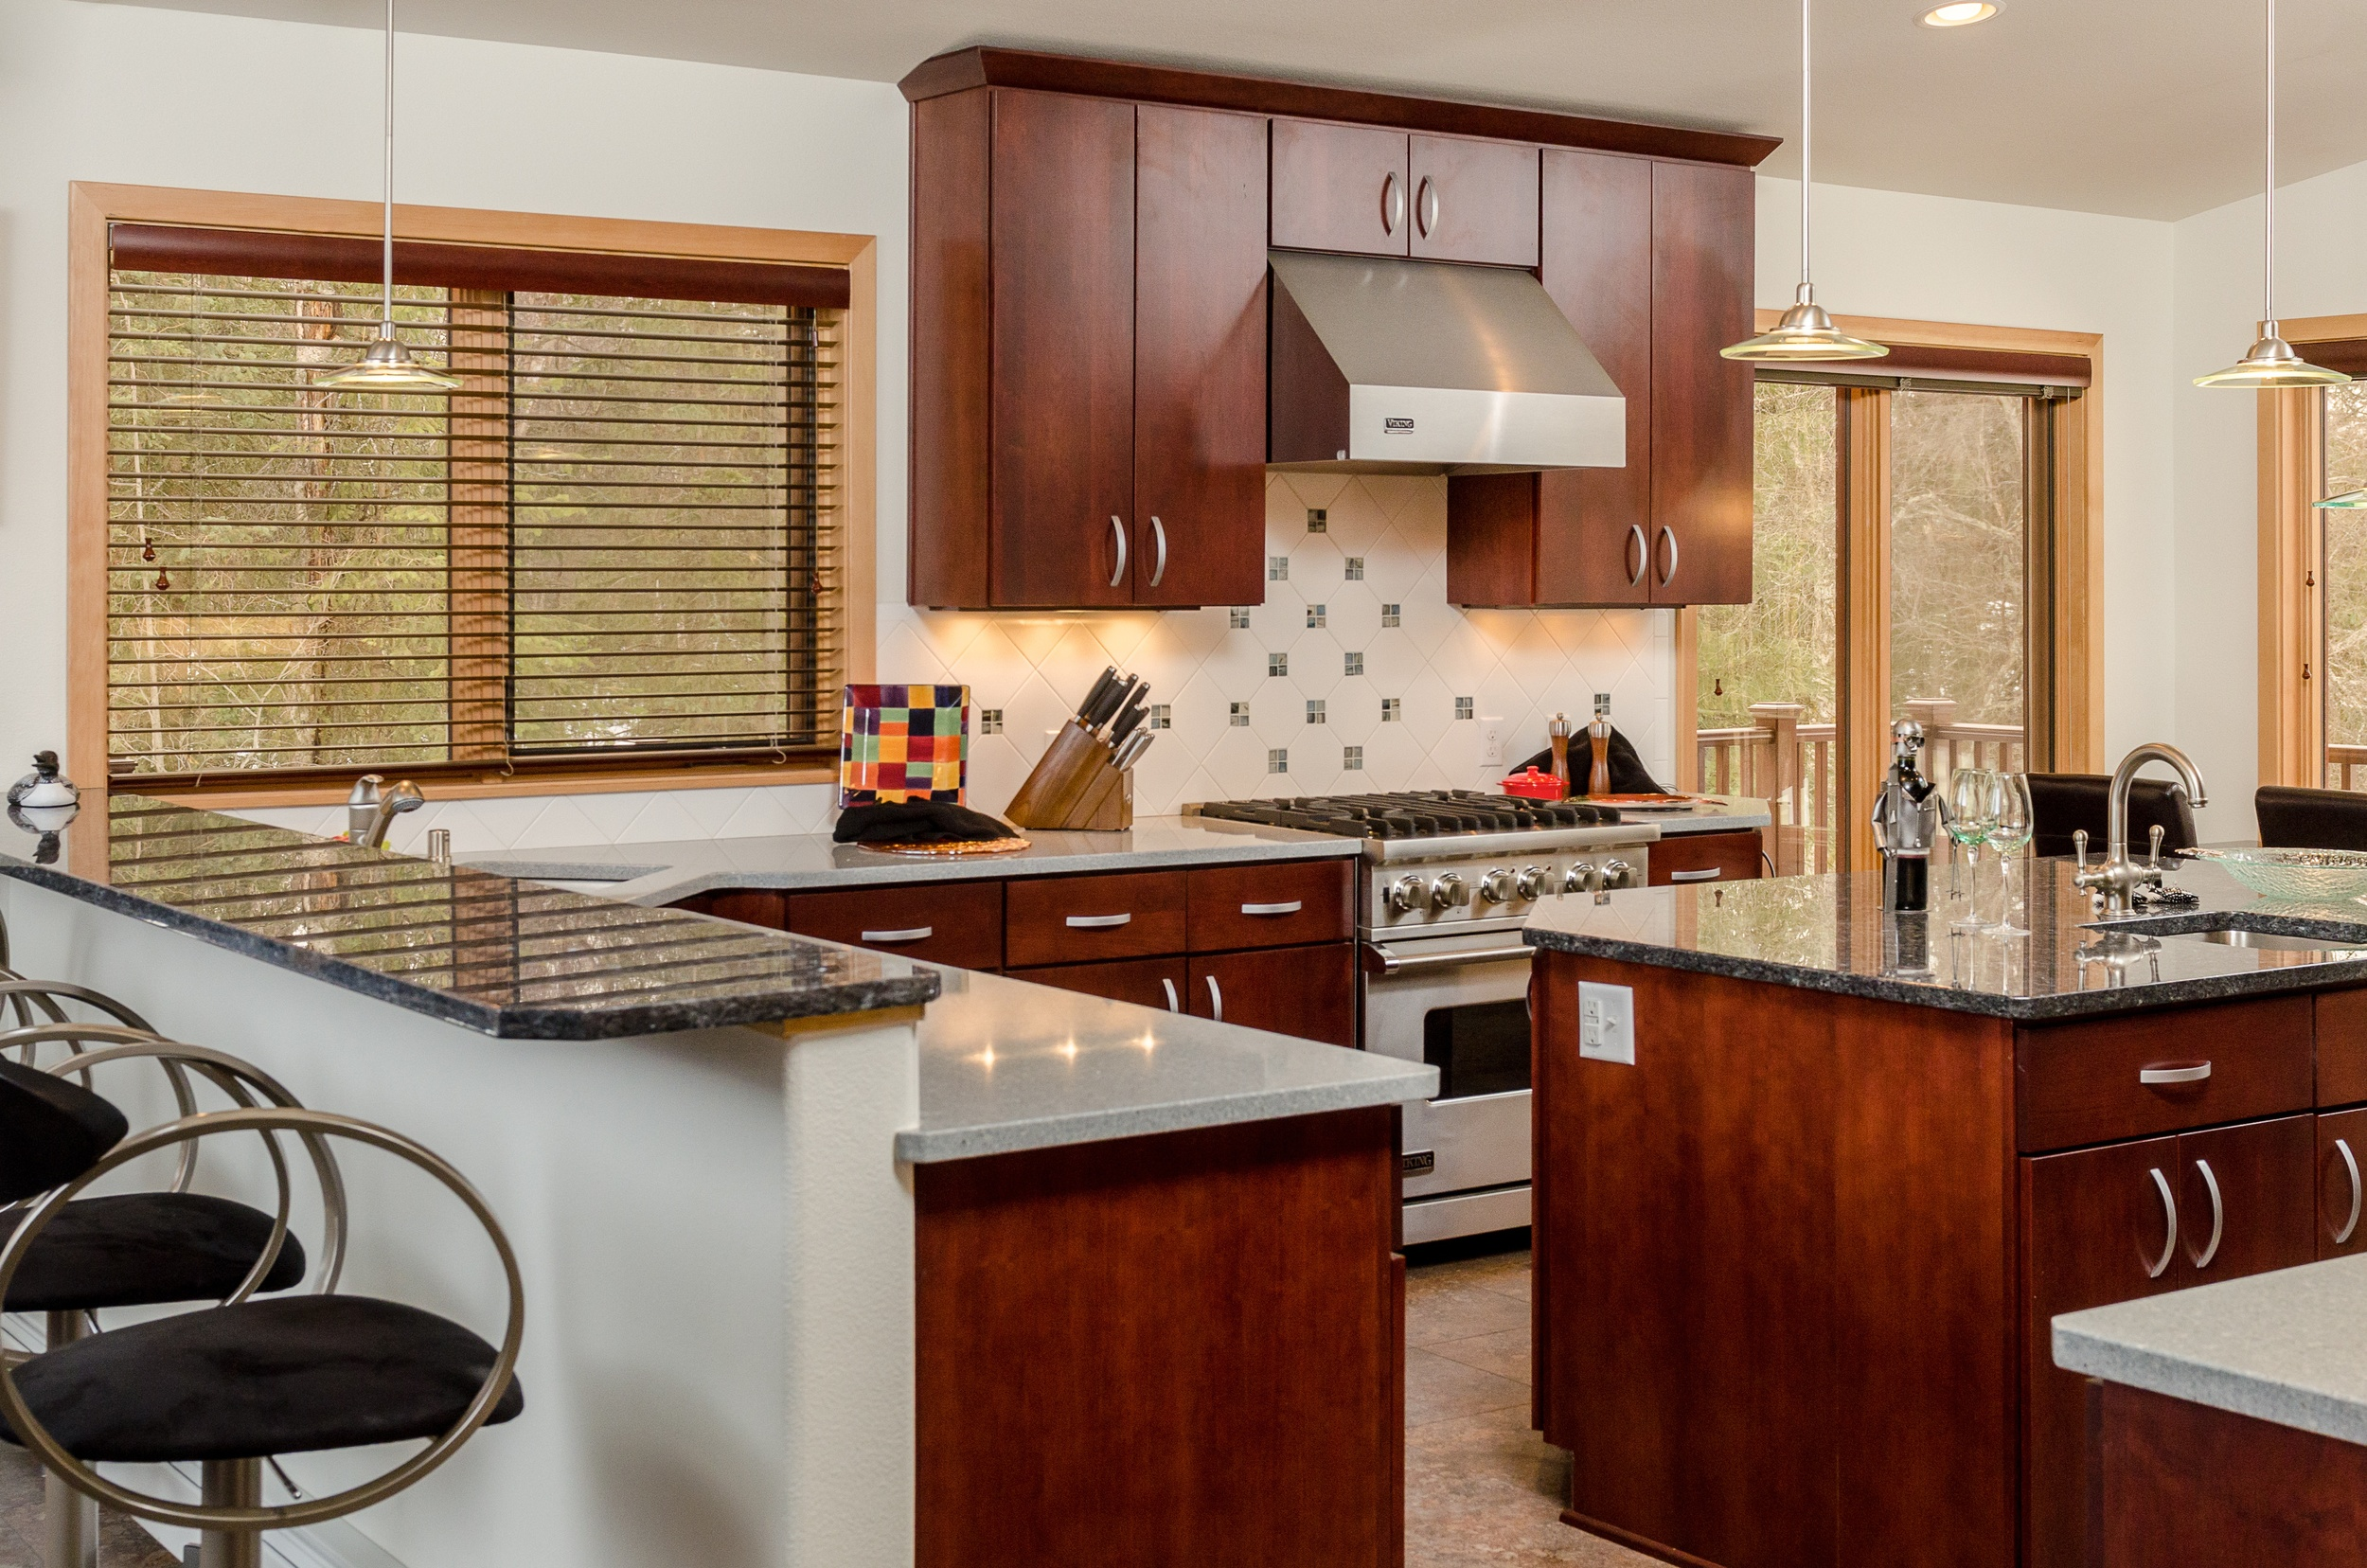 Kitchen Addition With Cherry Cabinets, Quarts and Granite Countertops